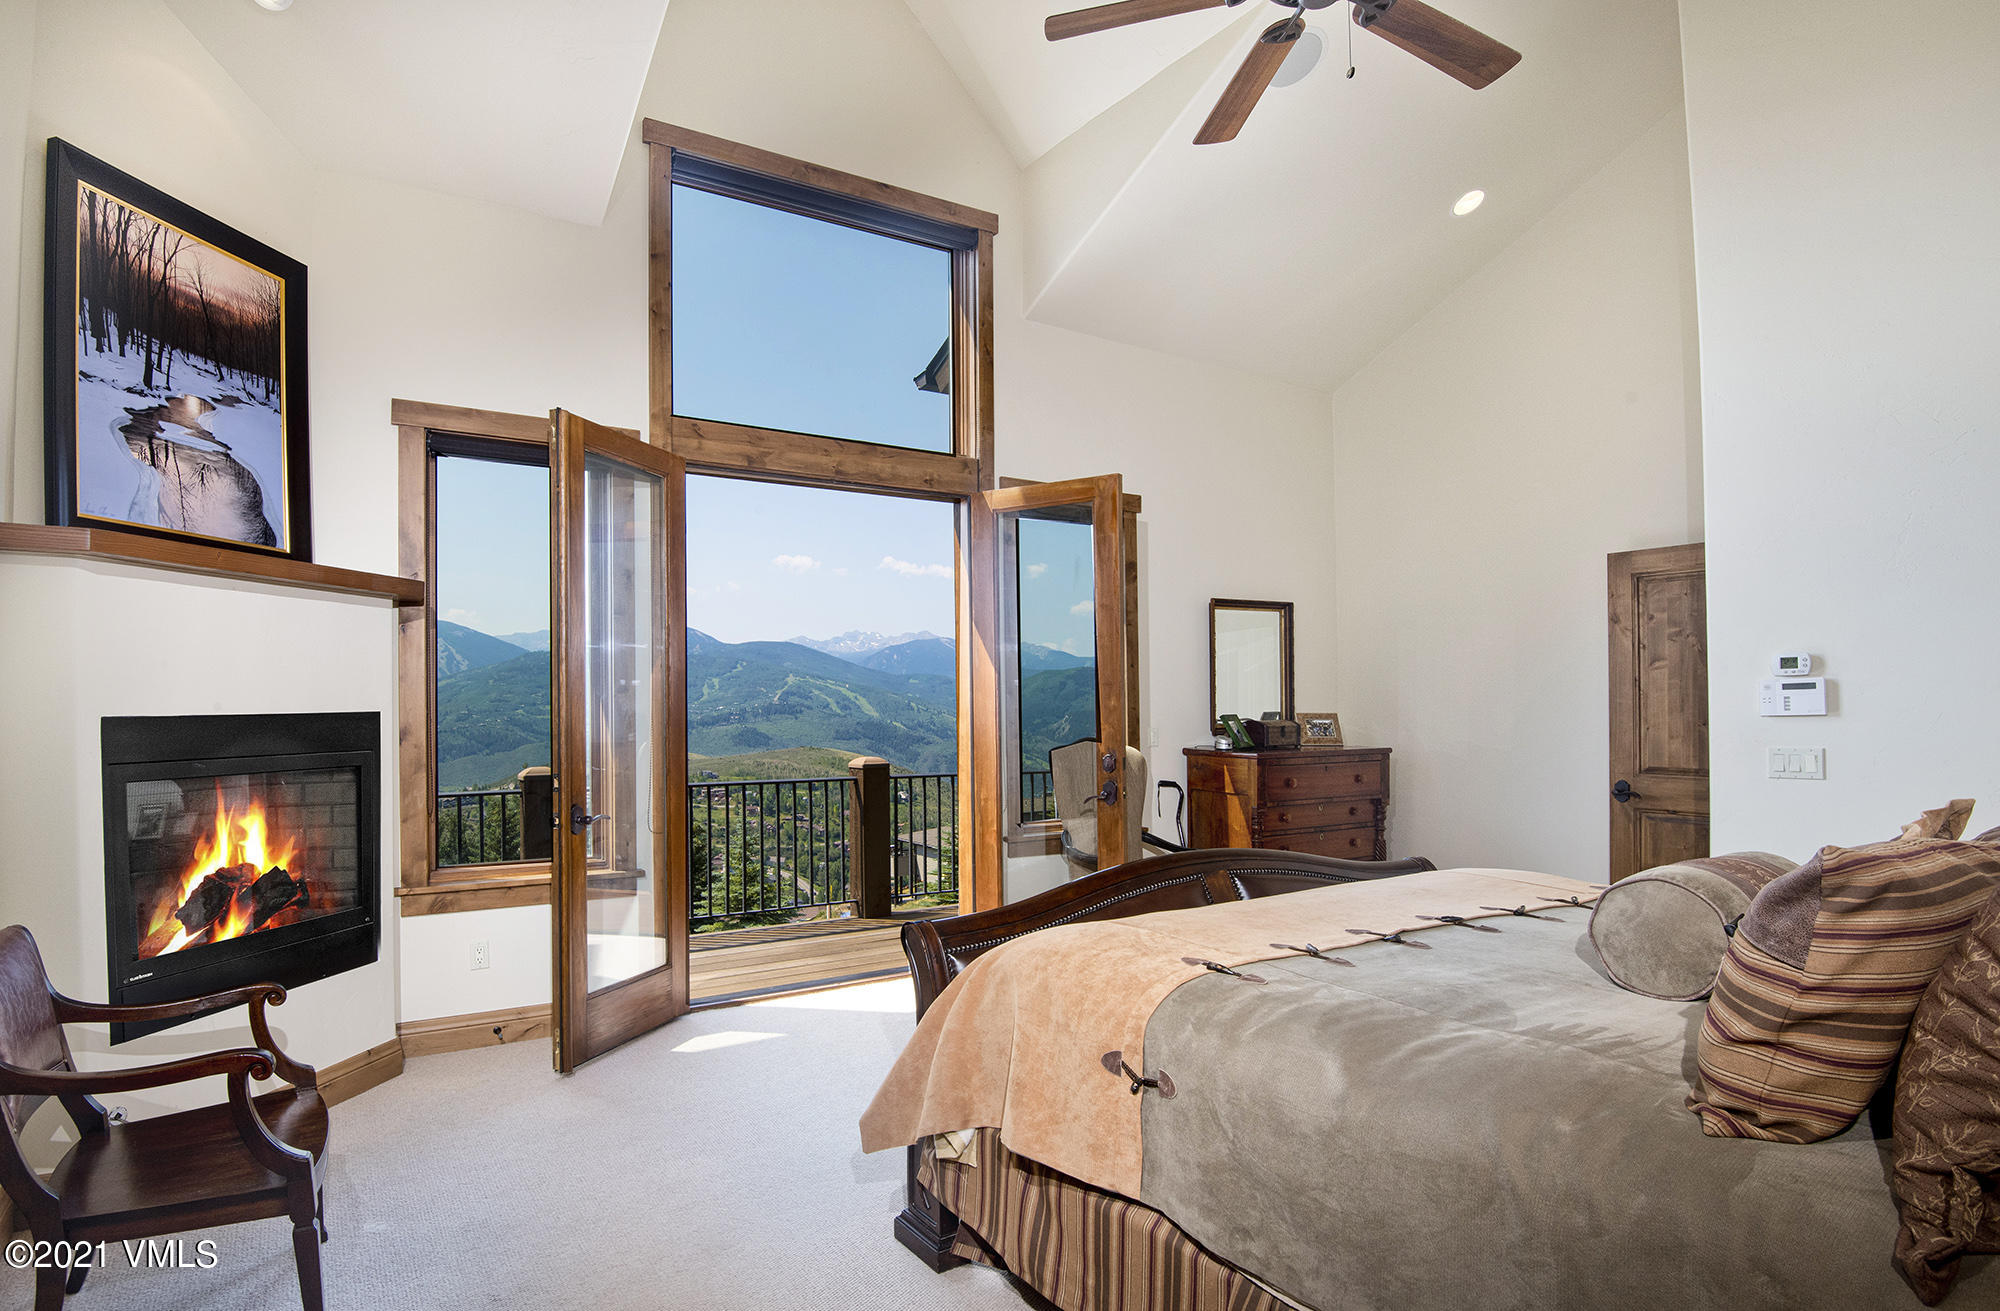 This spectacular home is thoughtfully perched high above the noise and valley floor, with magnificent views of Beaver Creek's ski slopes and the cascading Sawatch Mountain Range!  Proudly built in 2005 by a former George Schaffer contractor; the construction and finish-level are superior, with a long list of accoutrements such as hickory scraped floors, premium iron balusters-rail spindles, oversized, solid-wood doors with rustic bronze lever sets, expanded base & case, travertine tile, Kohler designer fixtures, steam showers with euro-glass enclosures, granite countertops, stainless steel appliances, built-in cabinetry, media room with projector & movie screen, custom wet bar with refrigerated drawers, dumb-waiter to kitchen, heated stone entry snowmelt, convertible 6th bedroom/wine room and a new 3/4 bath, added bedroom ceiling fans and A/C in the master, executive office and top floor rec-media room.  The floorplan is free flowing with ample windows, vaulted ceilings, and abundant natural light.  The large kitchen, dining and hearth room are cozy and marry well with the spacious living room by a handsome two-sided rock, wood-hearth, fireplace.  The home has an extensive audio sound system, multiple control panels and built-in speakers throughout!  Ipe Wood Decking wraps the exterior of the home, complete with a newer BBQ and Hot Springs Spa that enjoy perfect sunsets.  Kids and adults will find the sloped backyard a winter sledding haven!  All bedrooms are equally dispersed throughout 3 levels for privacy, each with En-Suite bathrooms and large closets.  For convenience, each level of the home has a laundry, and, the master bedroom and executive office are on the main level.  This home will certainly meet or exceed all your mountain lifestyle needs and desires, summer or winter, it's a perfect entertainer for friends and family and easily sleeps 15 to 17 people.  Come see this home soon before its gone, it's in mint condition and a real showstopper!